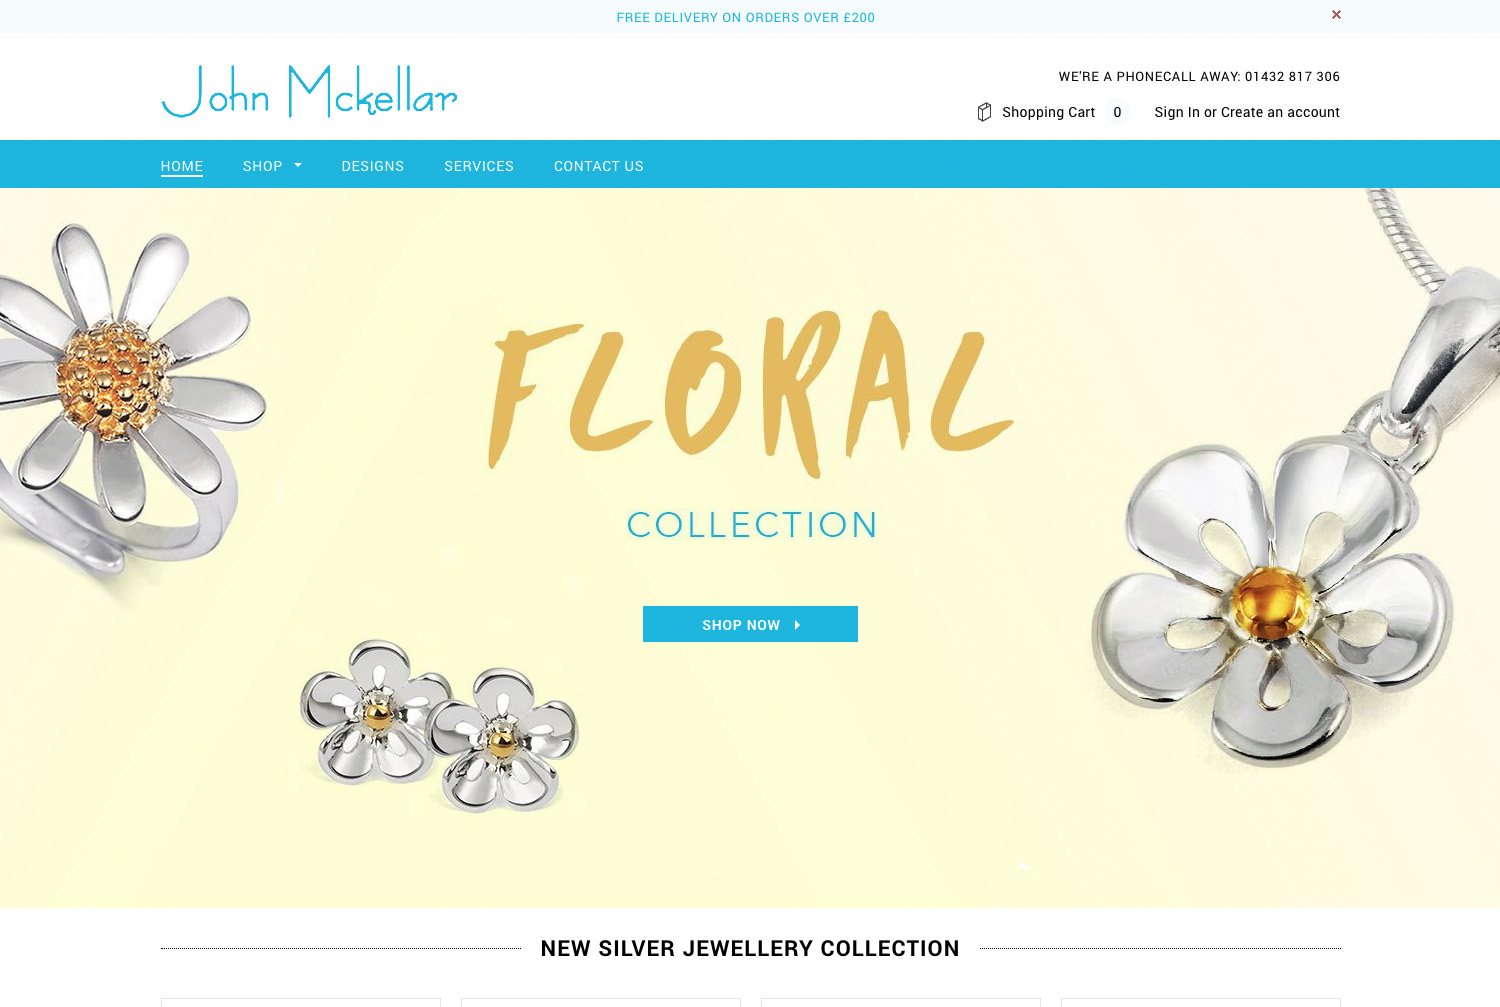 John Mckellar - We helped launch a new site for award winning Jewellery Designer John McKellar, enabling customers to browse their collection of designer, handmade platinum, silver and gold jewellery.